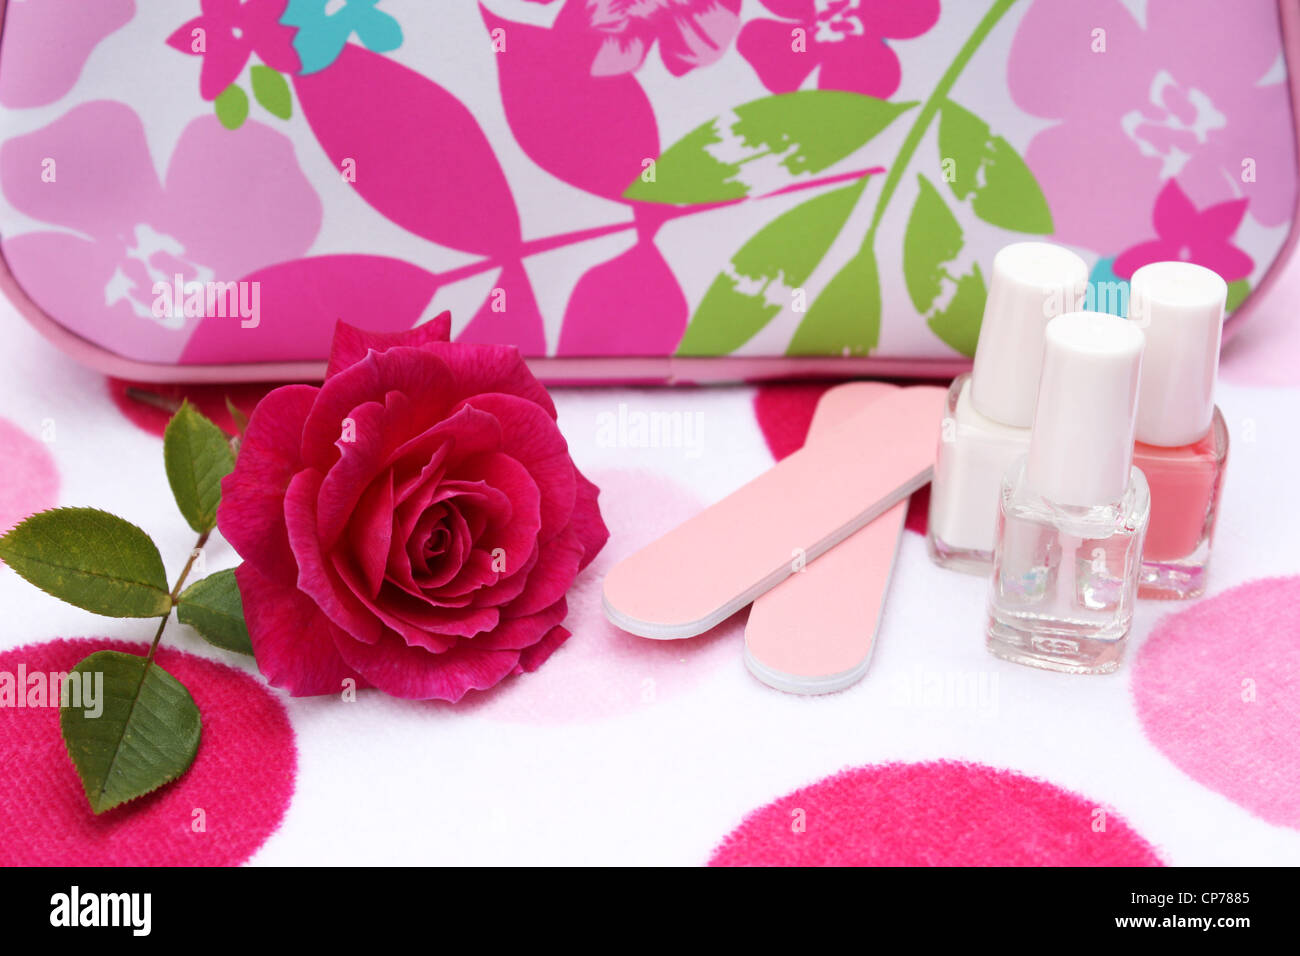 Nail varnish and accessory bag with a pink rose flower - Stock Image